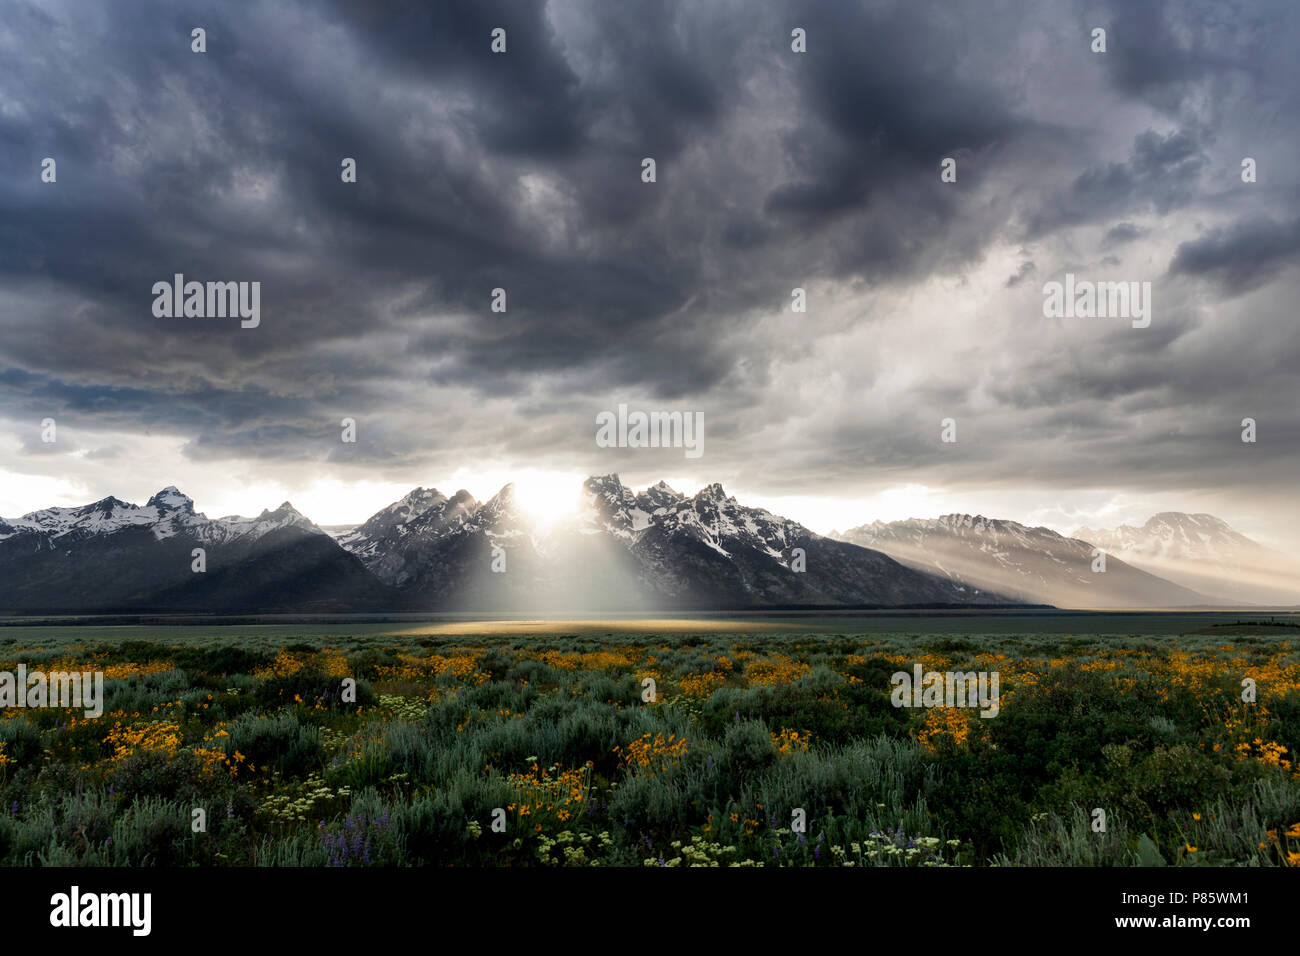 WY02757-00...WYOMING - Storm clouds over the Teton Range in Grand Teton National Park. - Stock Image